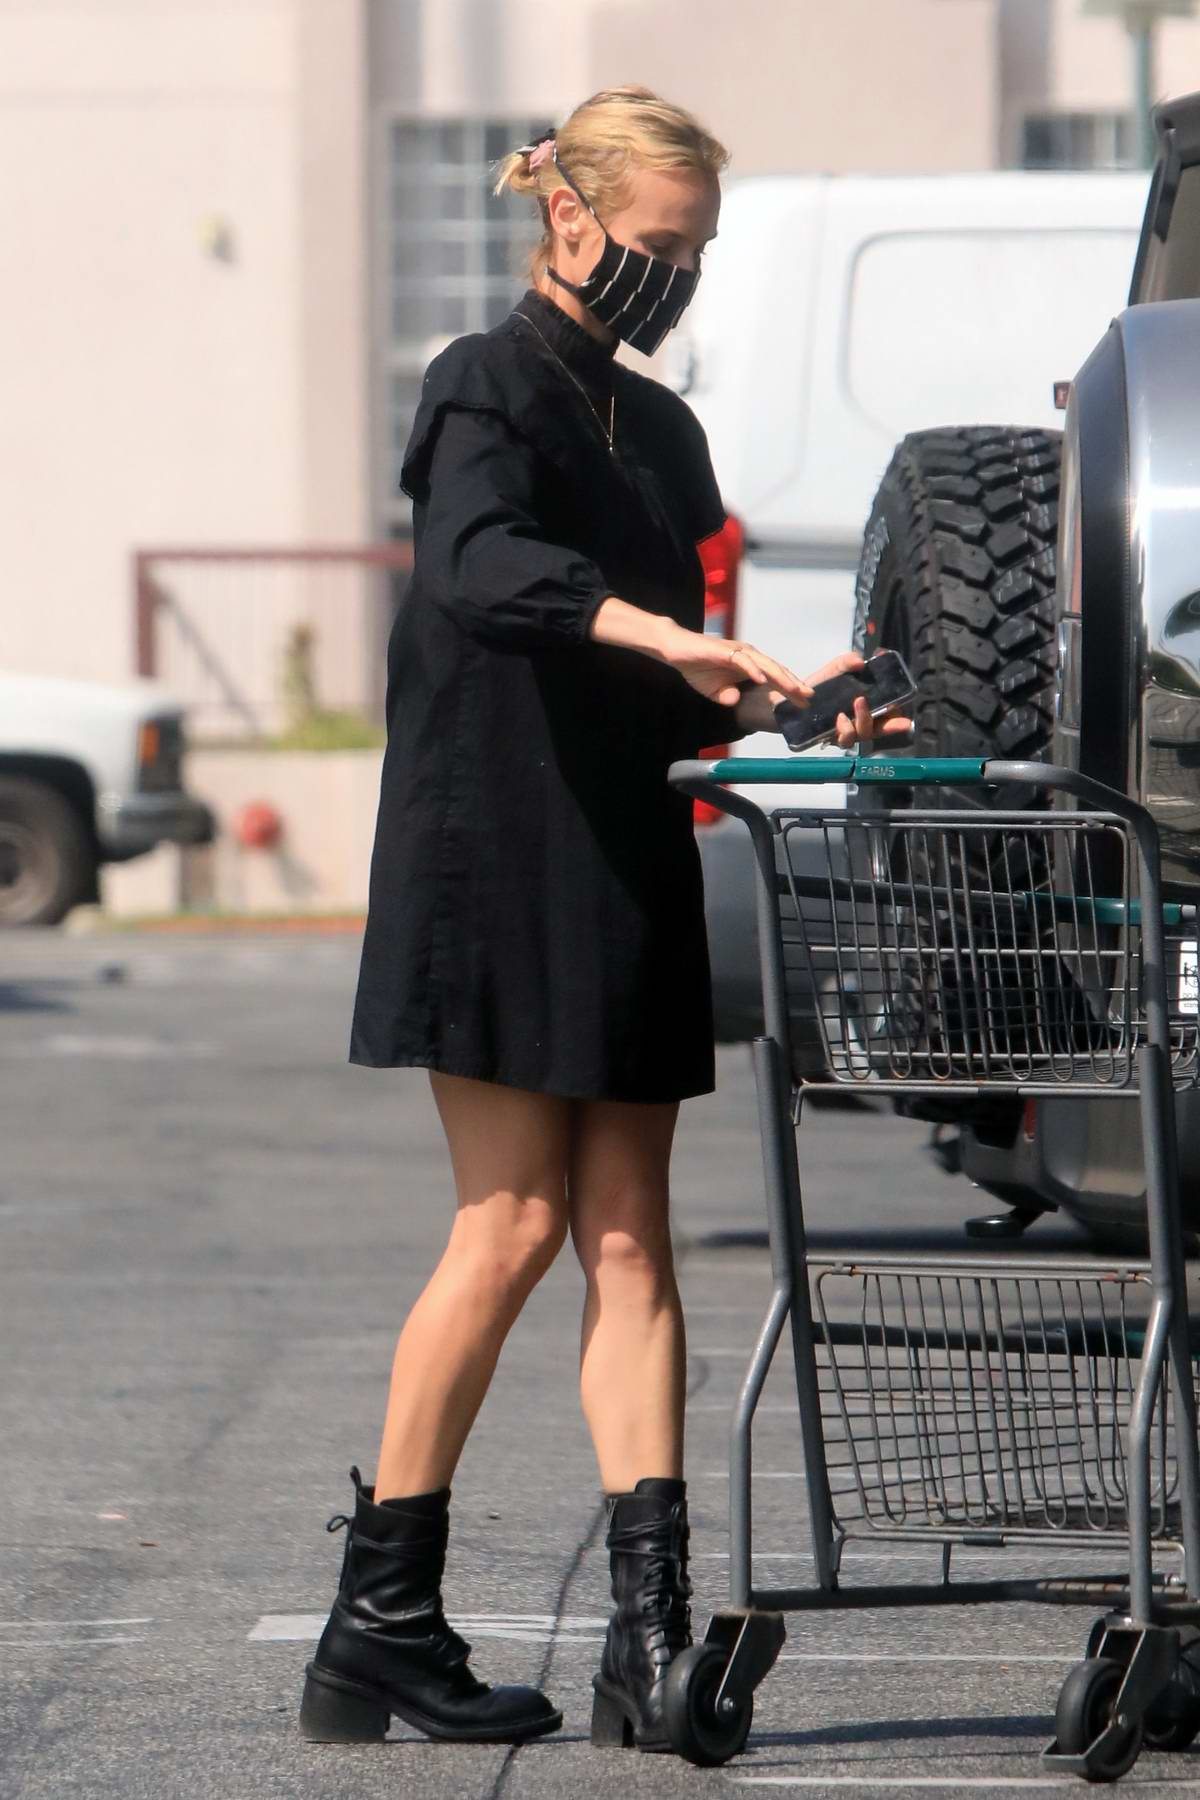 Diane Kruger wears a short black dress and combat boots while shopping groceries at Bristol Farms in Los Angeles